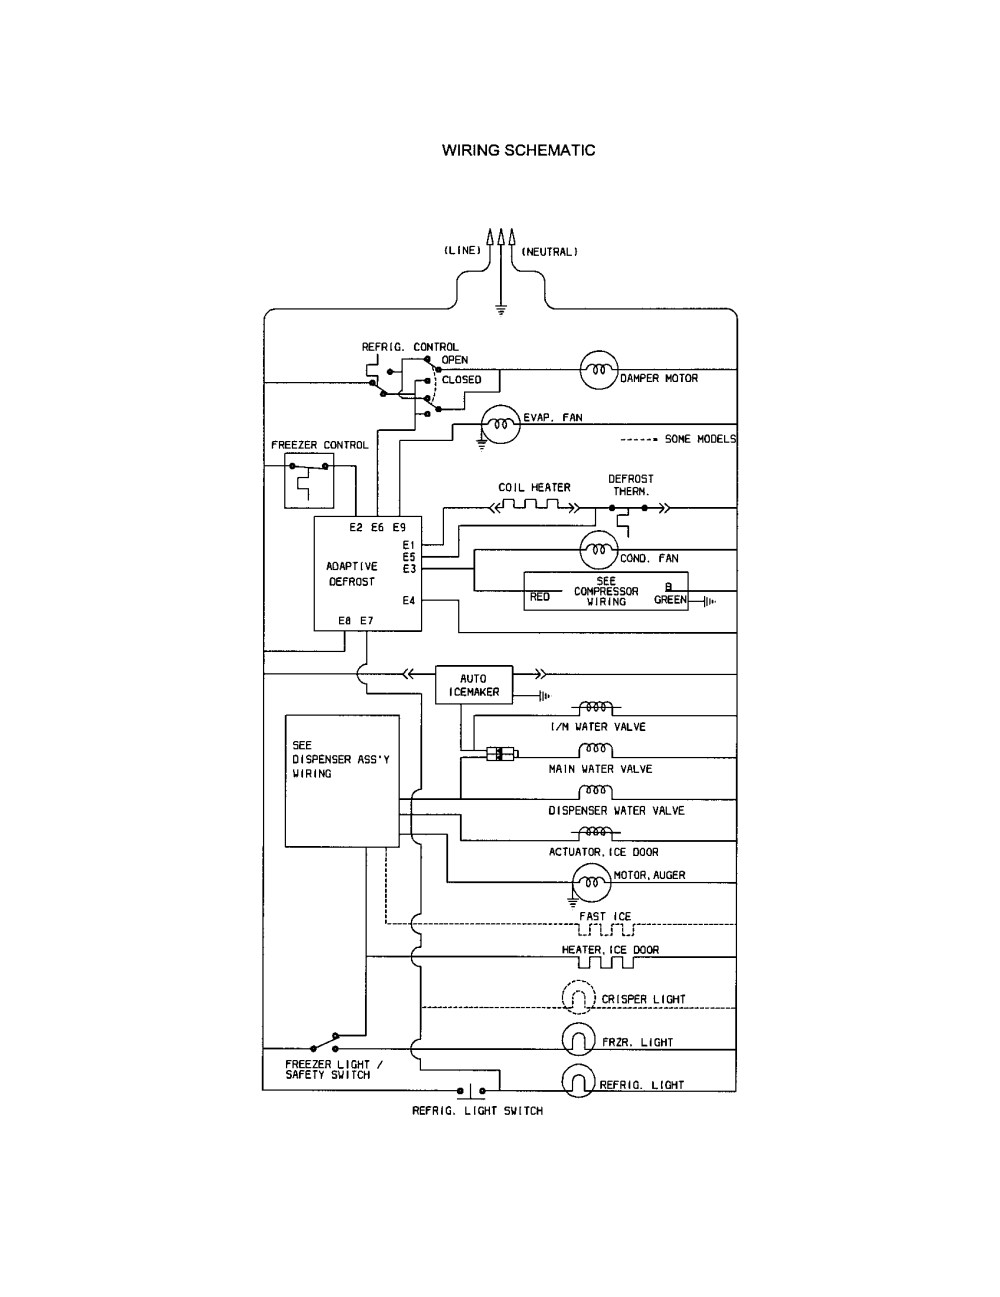 medium resolution of kenmore refrigerator wiring schematic full size of wiring diagram kenmore side by refrigerator parts model